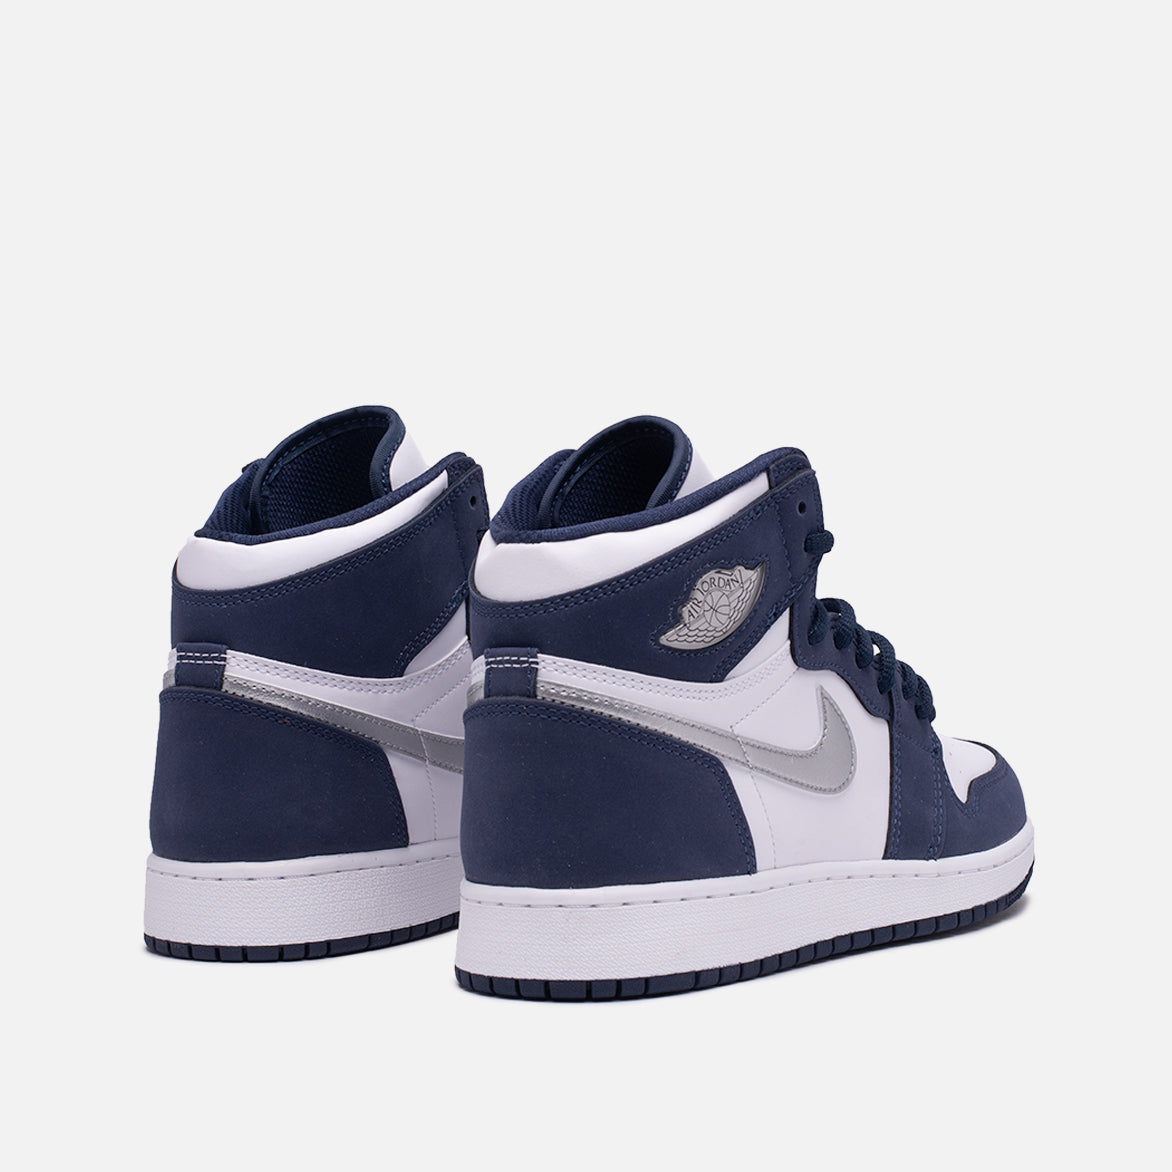 "AIR JORDAN 1 RETRO HIGH OG CO.JP (GS) ""MIDNIGHT NAVY"""